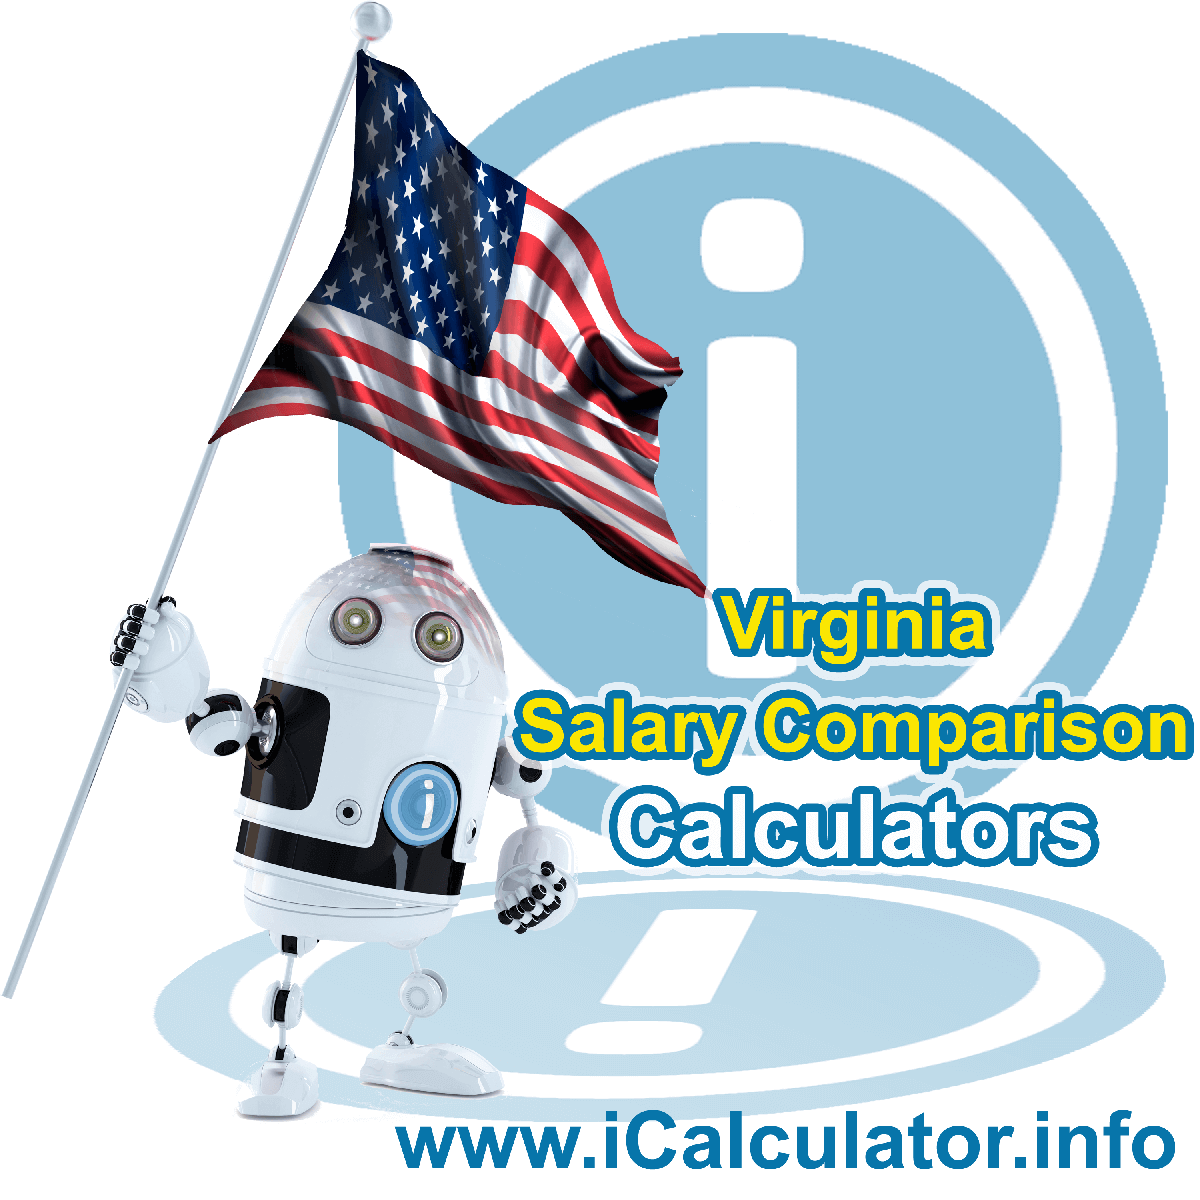 Virginia Salary Comparison Calculator 2020 | iCalculator | The Virginia Salary Comparison Calculator allows you to quickly calculate and compare upto 6 salaries in Virginia or between other states for the 2020 tax year and historical tax years. Its an excellent tool for jobseekers, pay raise comparison and comparison of salaries between different US States